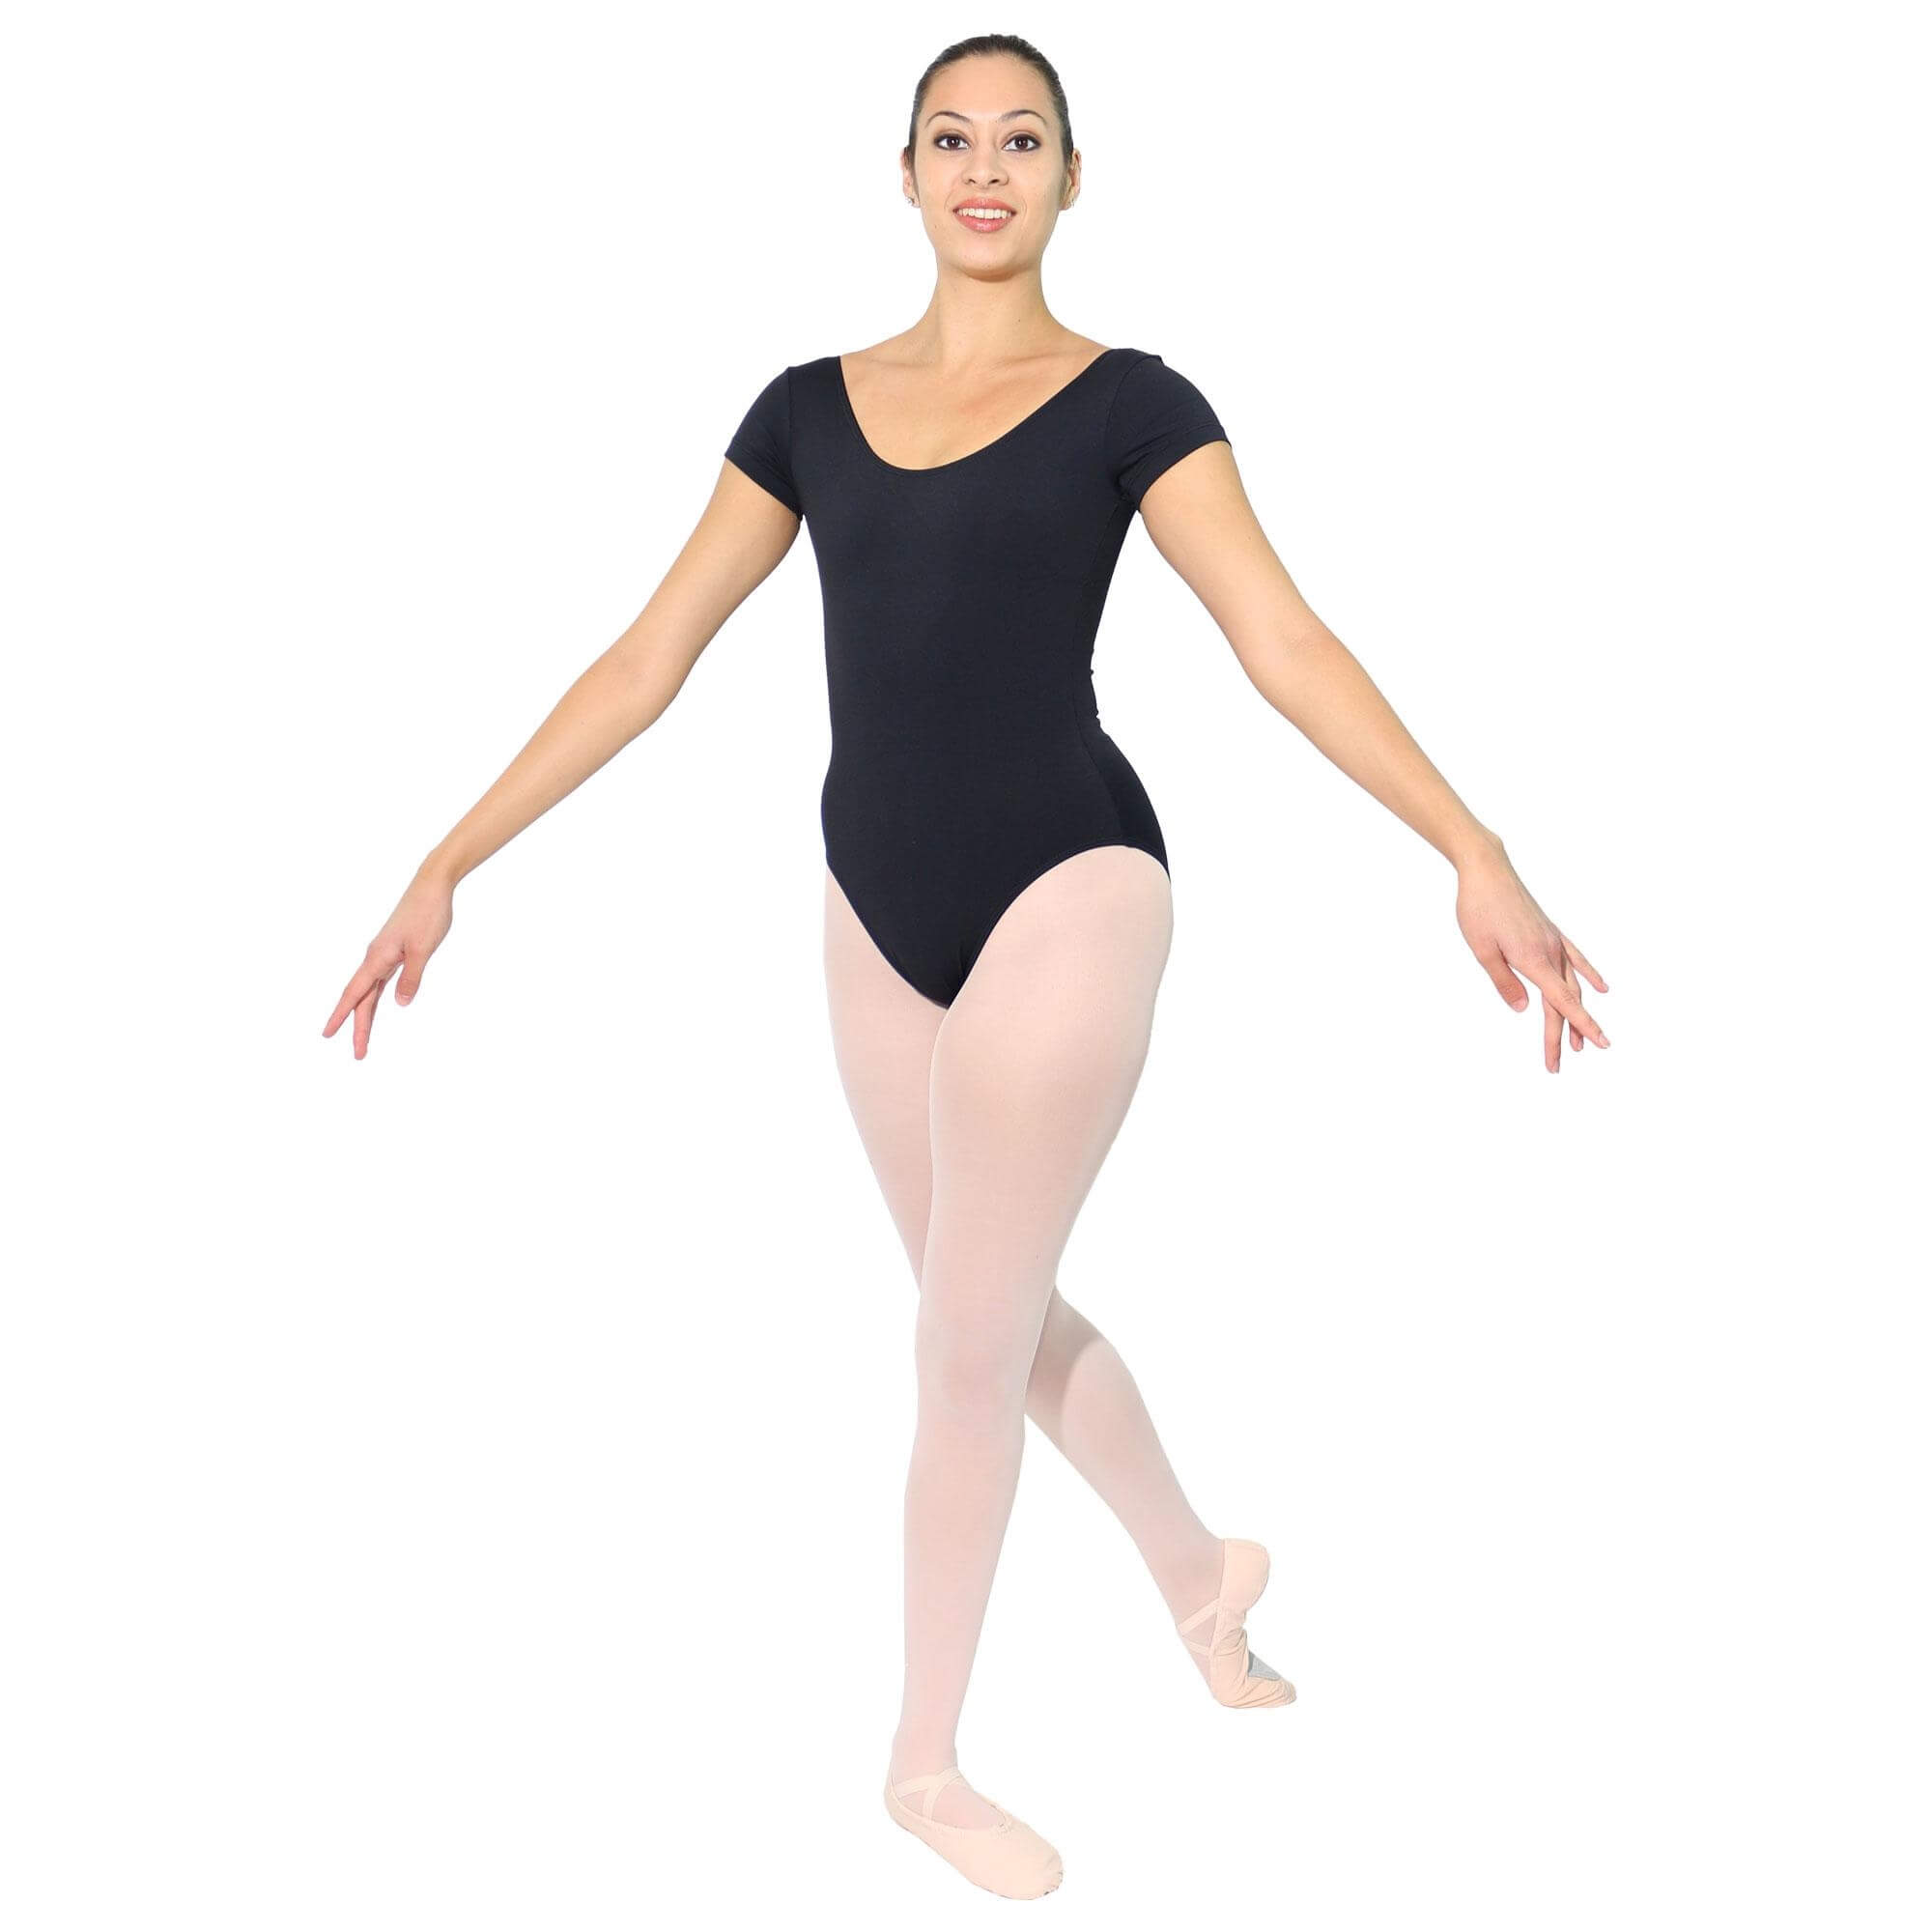 Danzcue Adult Cotton Short Sleeve Ballet Cut Leotard